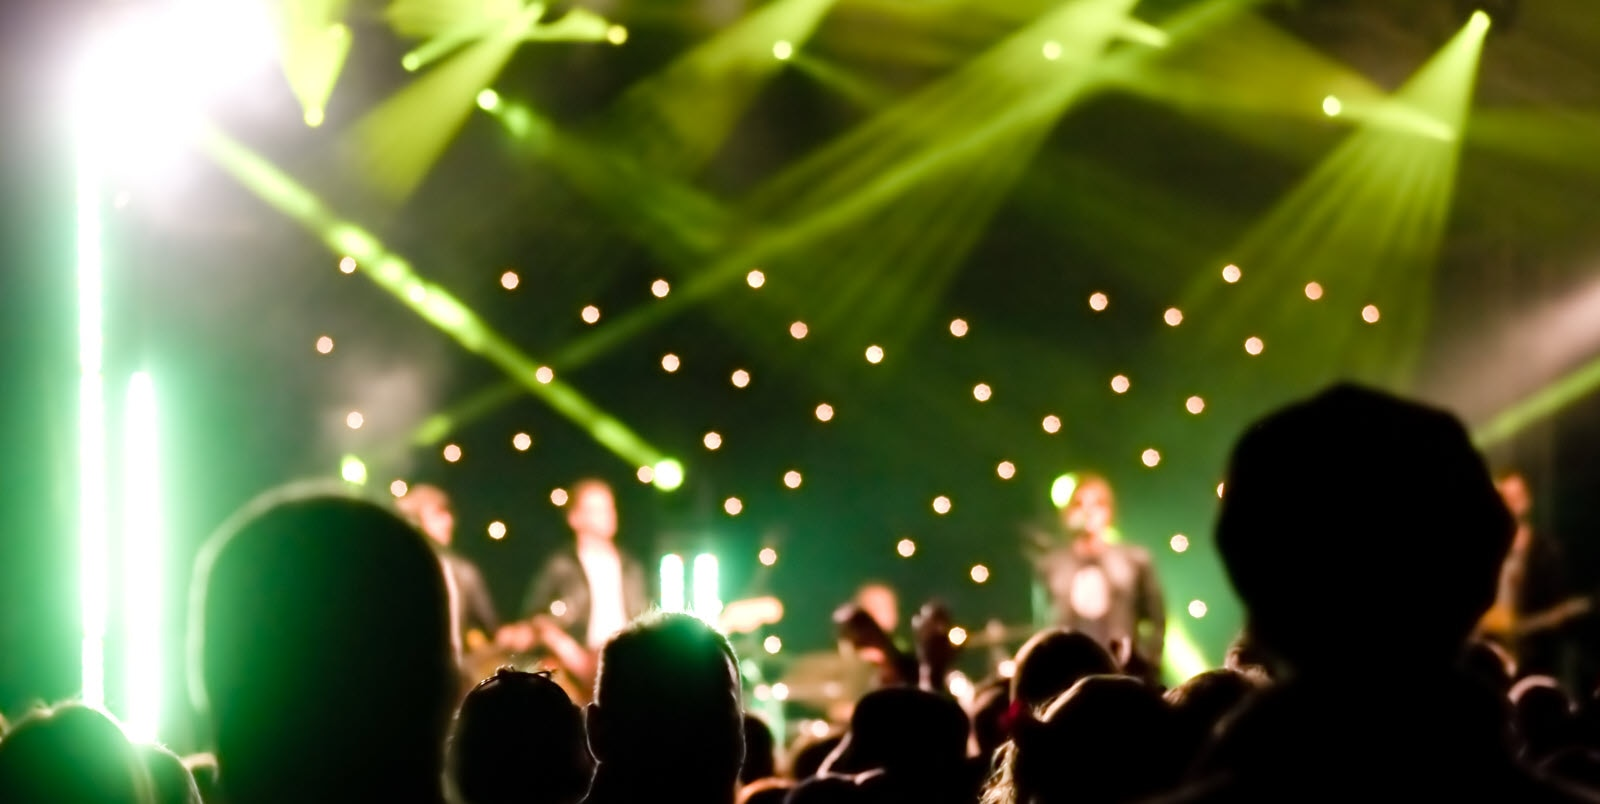 Mostphotos.com. Audience at a live music concert,